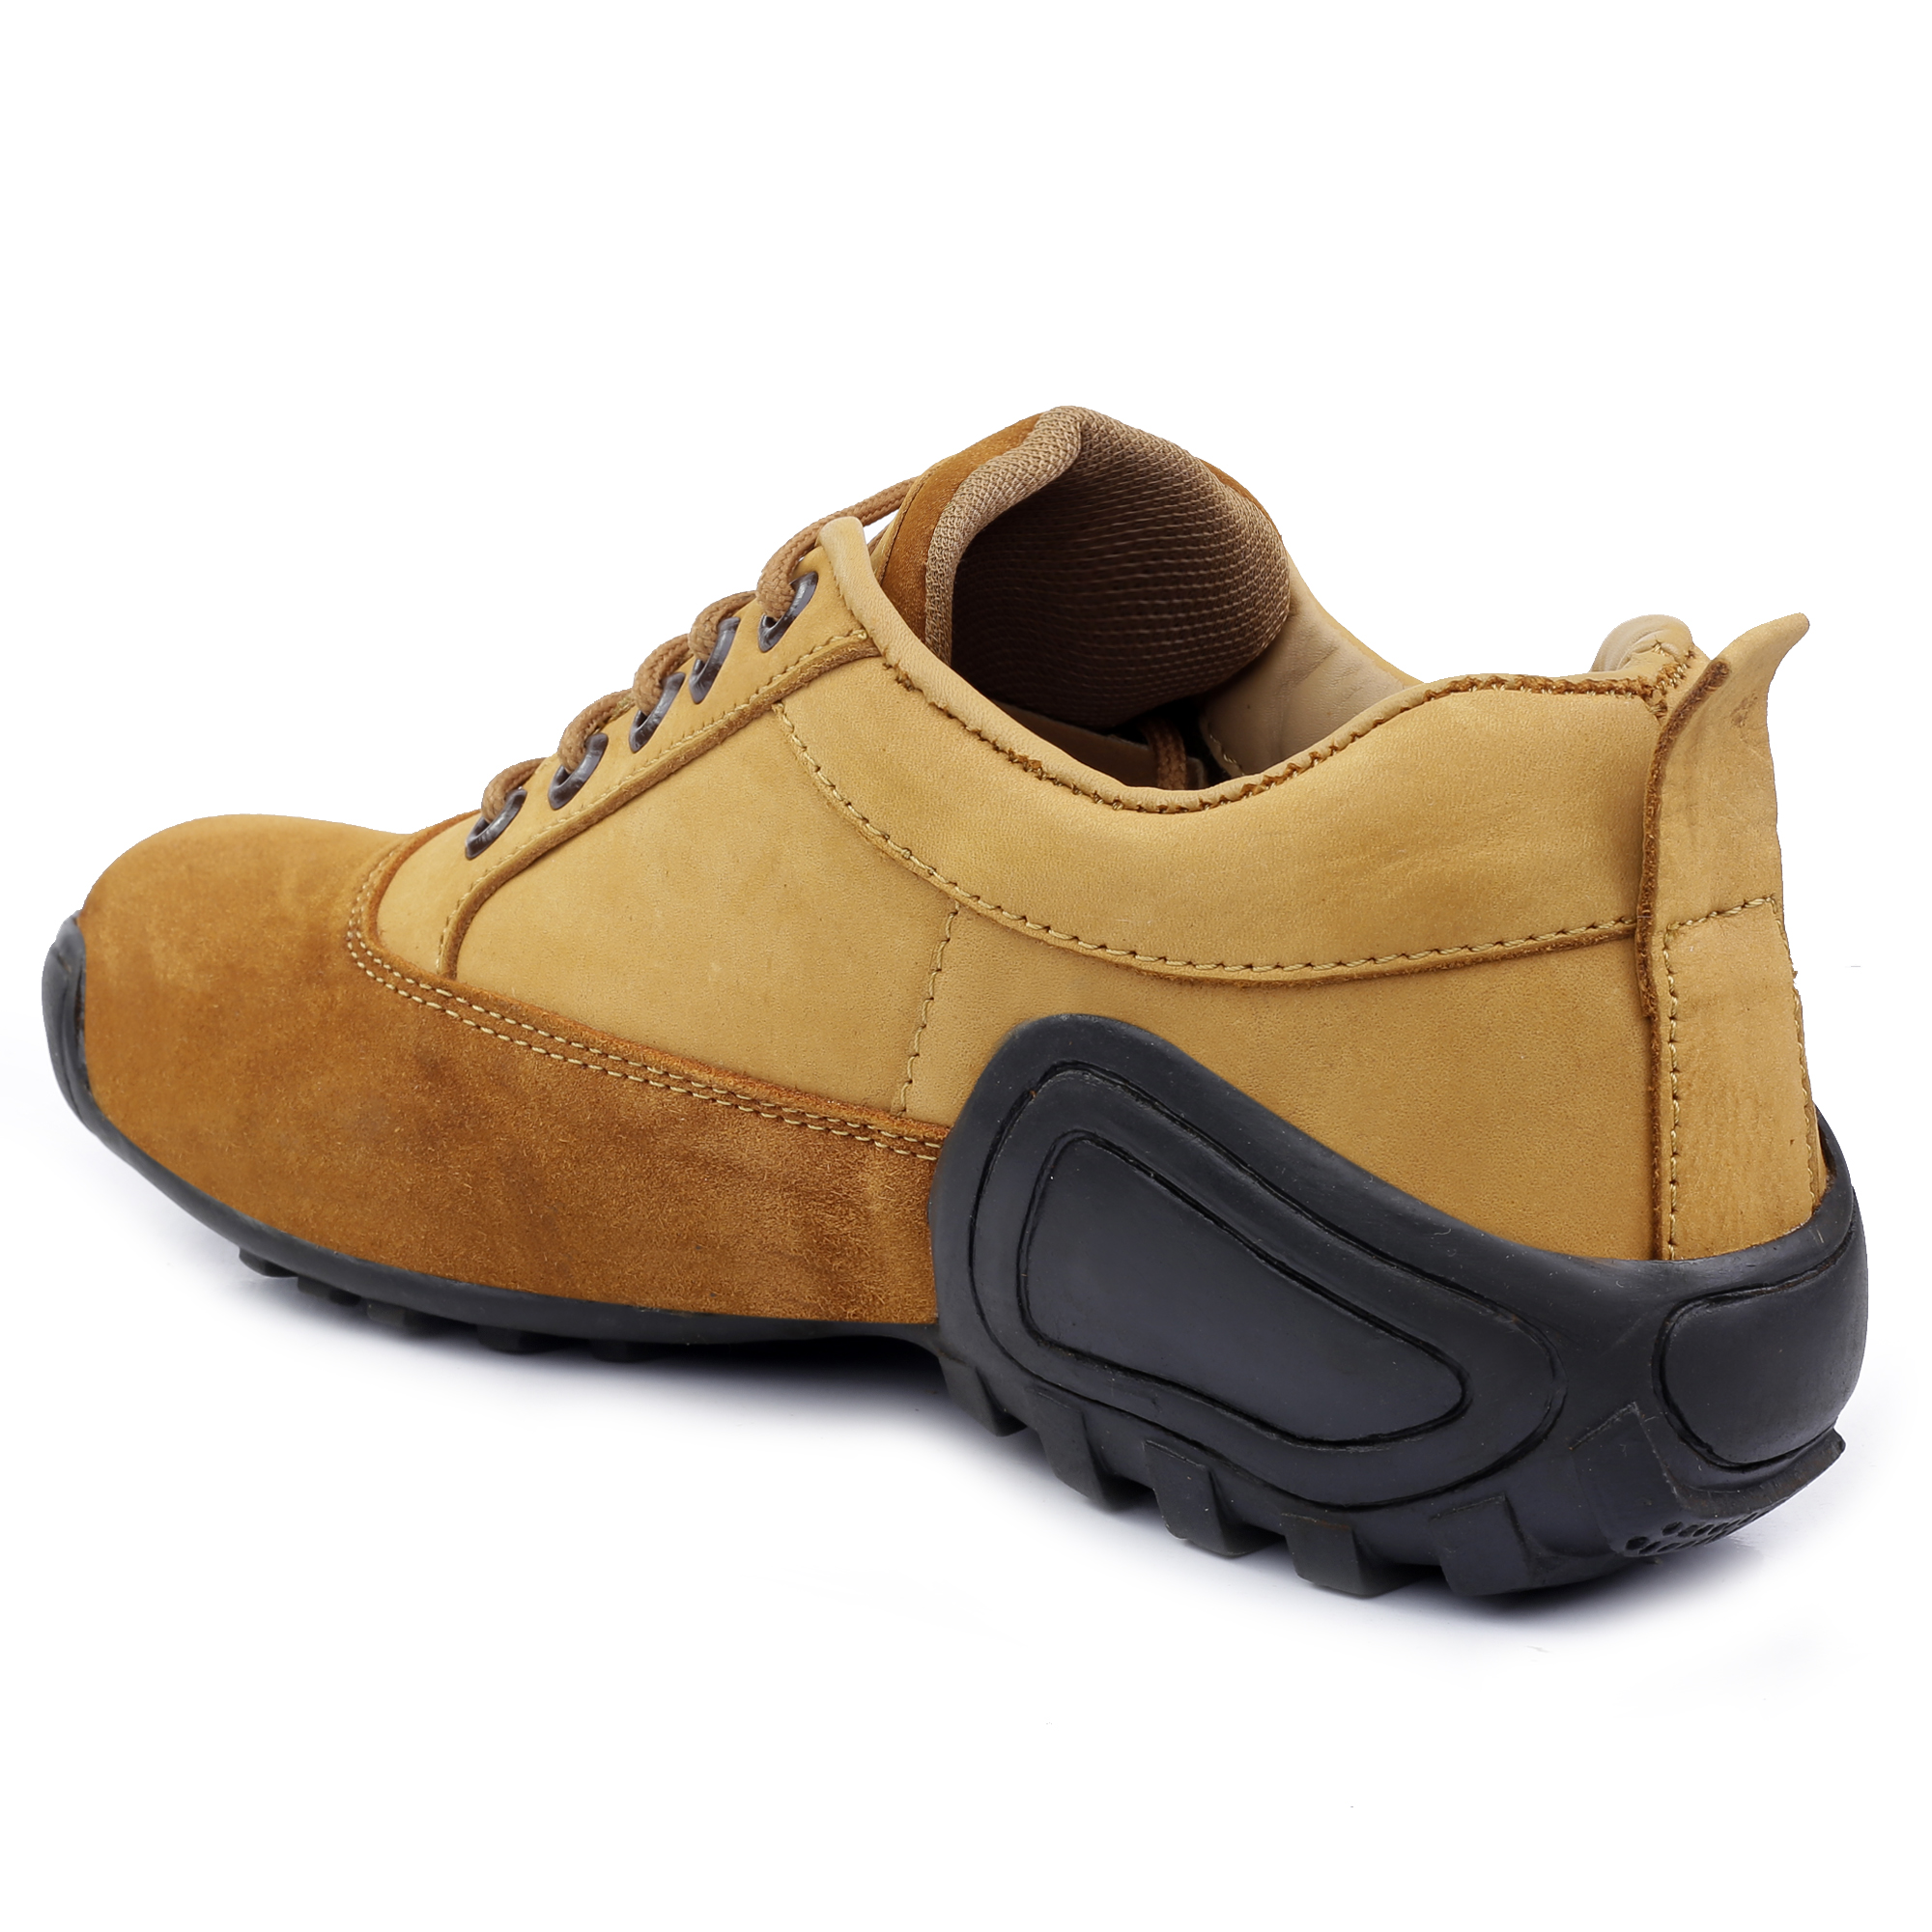 IMC674A.6000_TN GOOD QUALITY & FANCY CASUAL LEATHER BOOT SHOE FOR MEN IMC674A.6000_TN (TAN, 7TO10, 4 PAIRS)